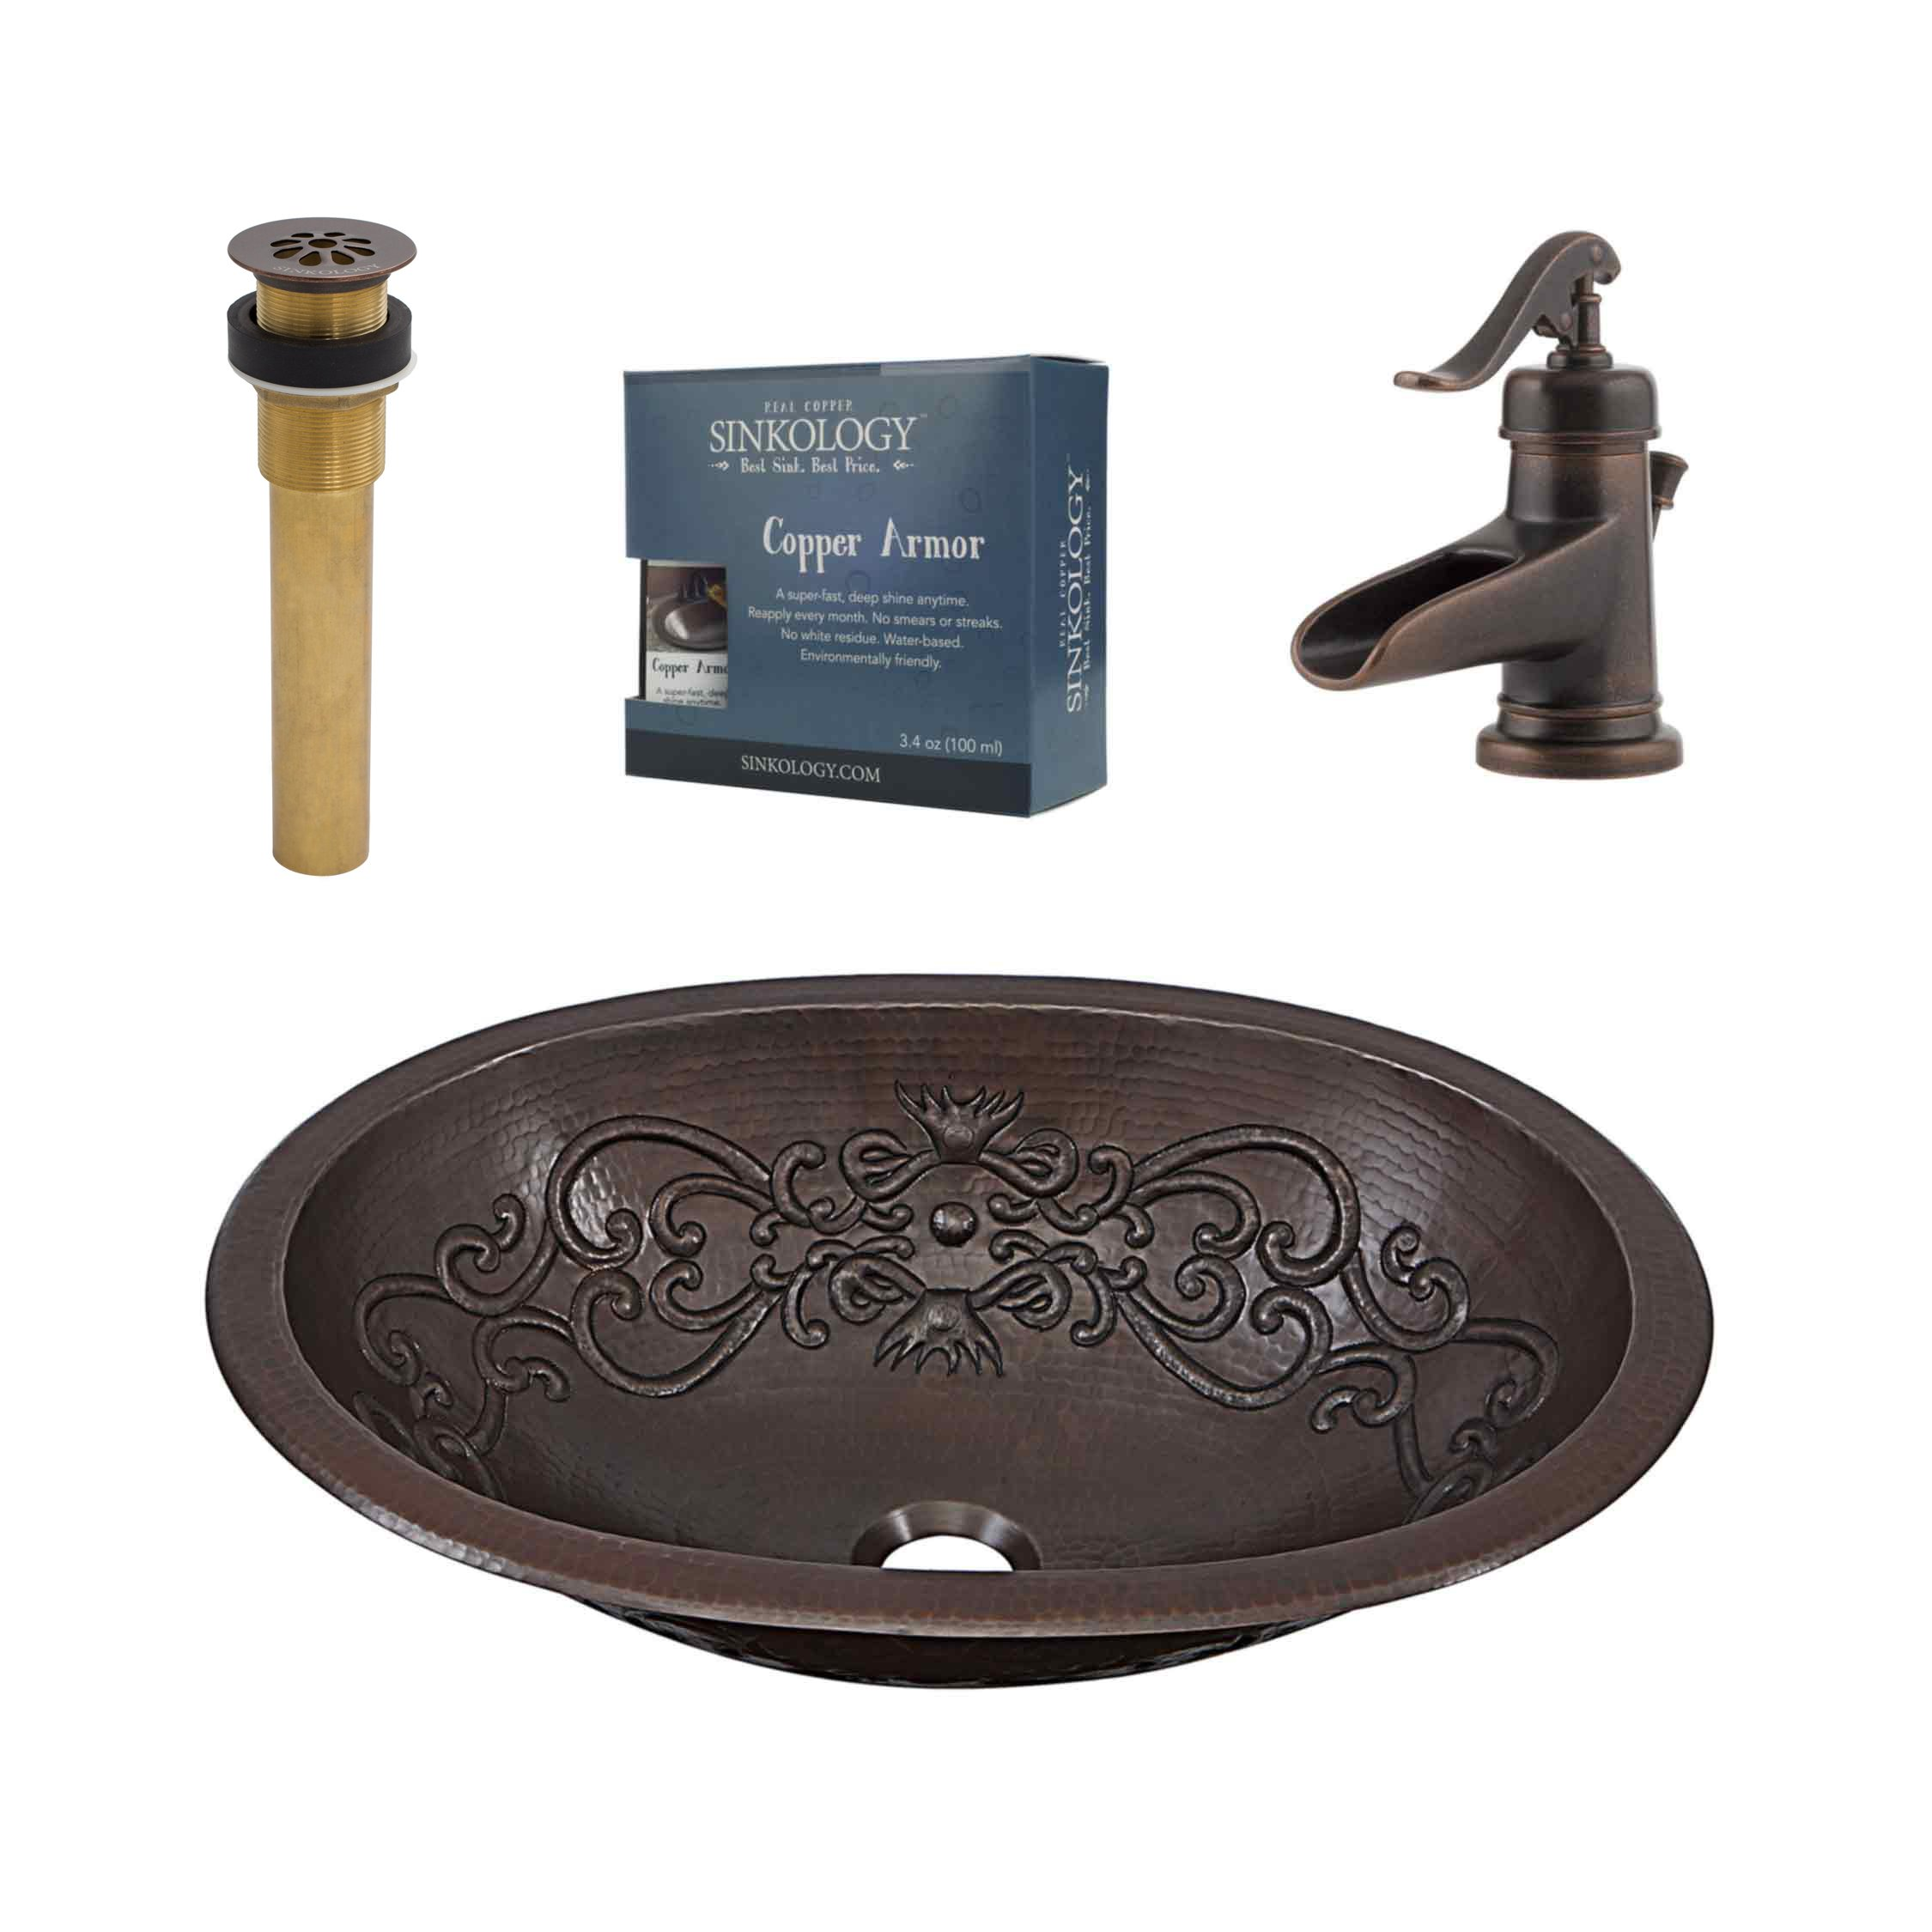 Sinkology SB202-19SC-F042 Pauling & Ashfield All-in-One Copper Bathroom Sink Design Kit with Pfister Rustic Bronze Faucet and Drain